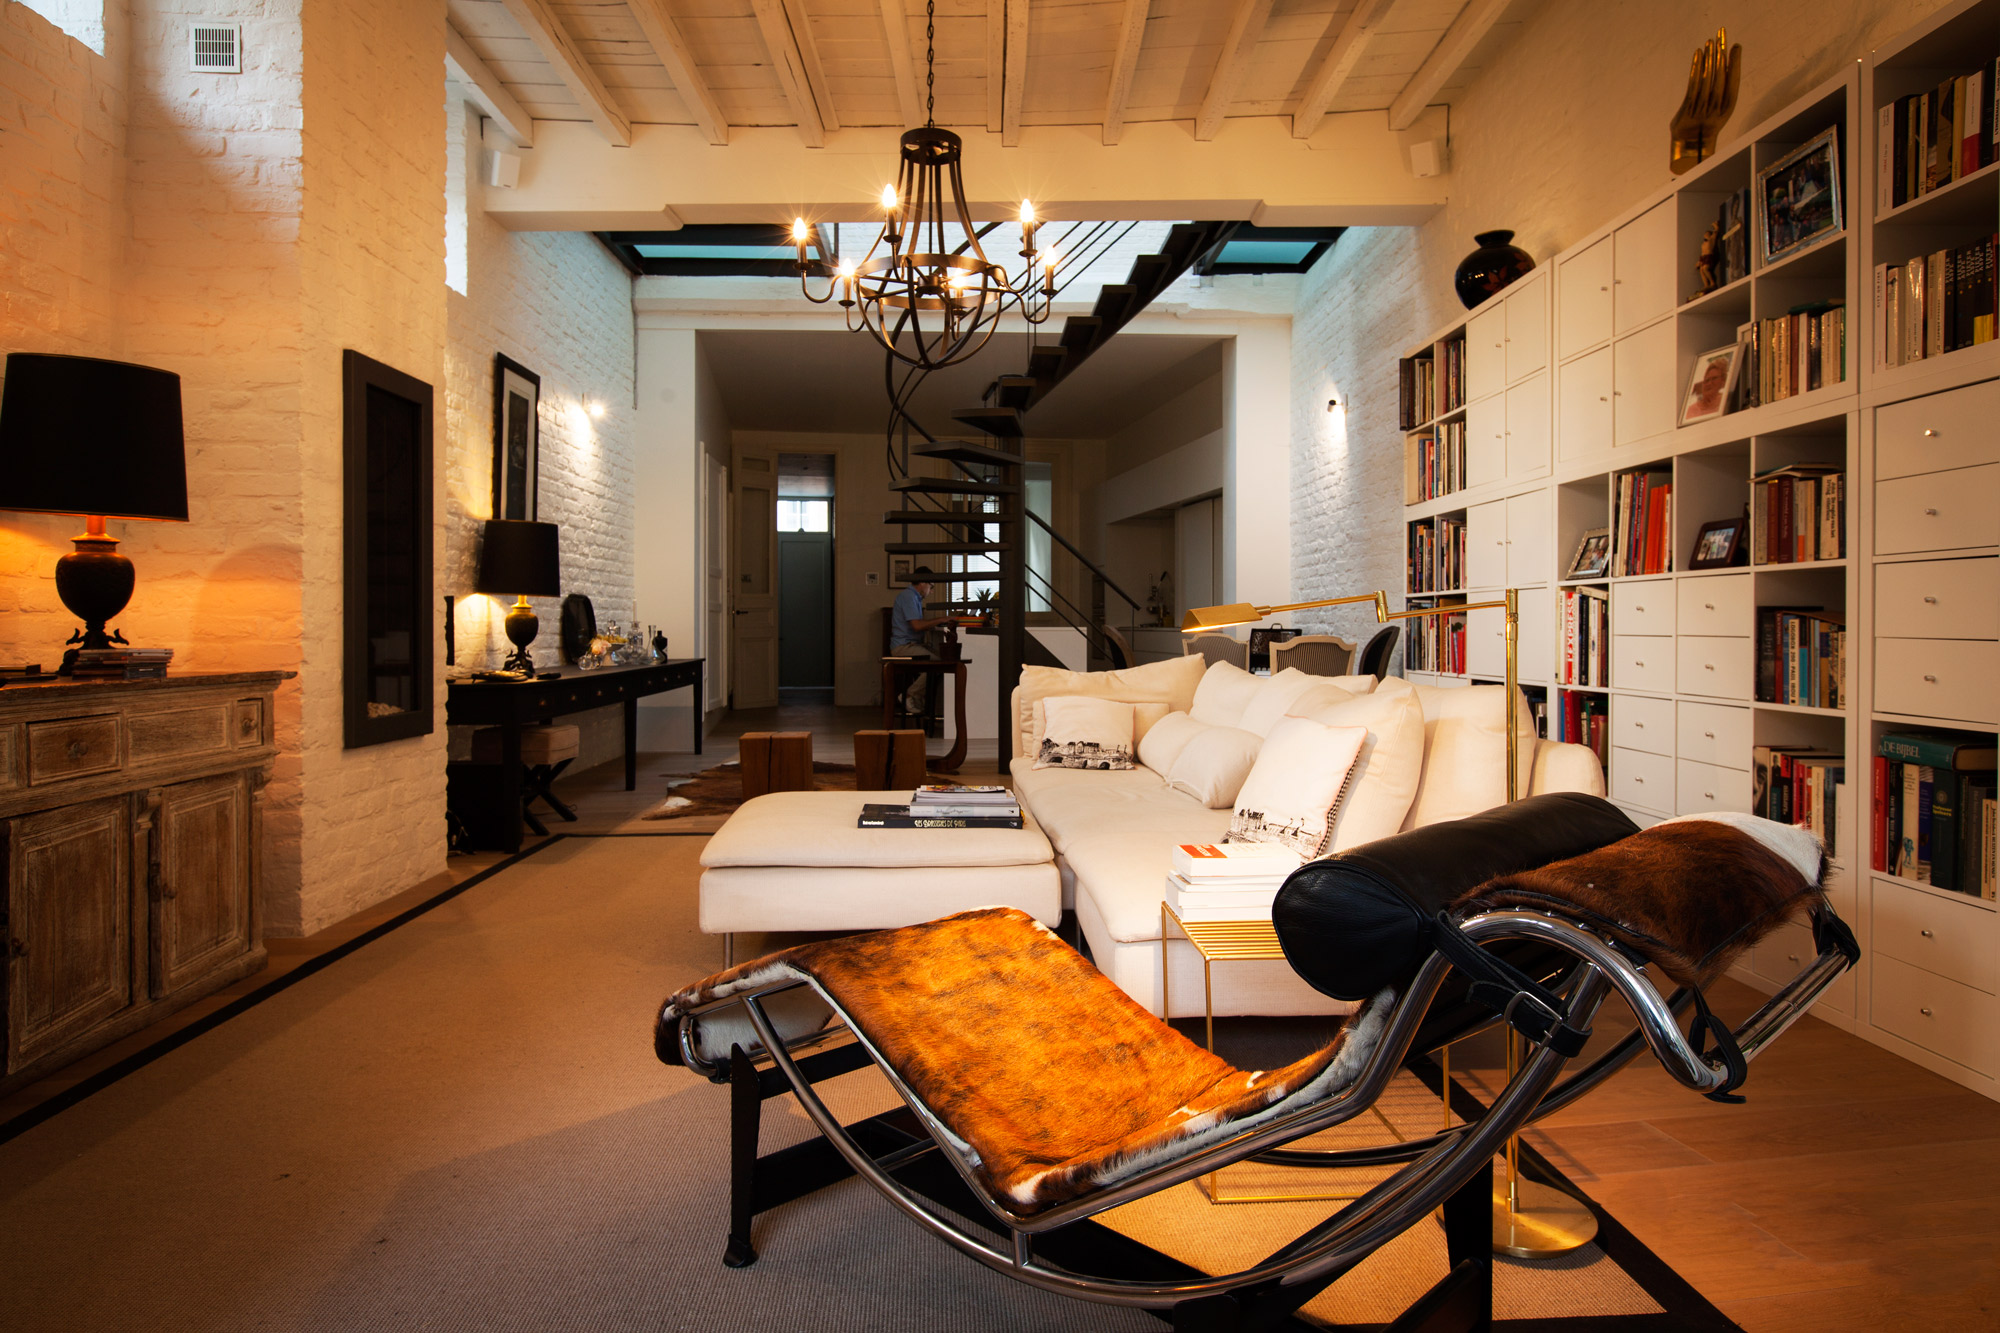 The stylish and cosy interior at bed and breakfast Maison Amodio in Bruges